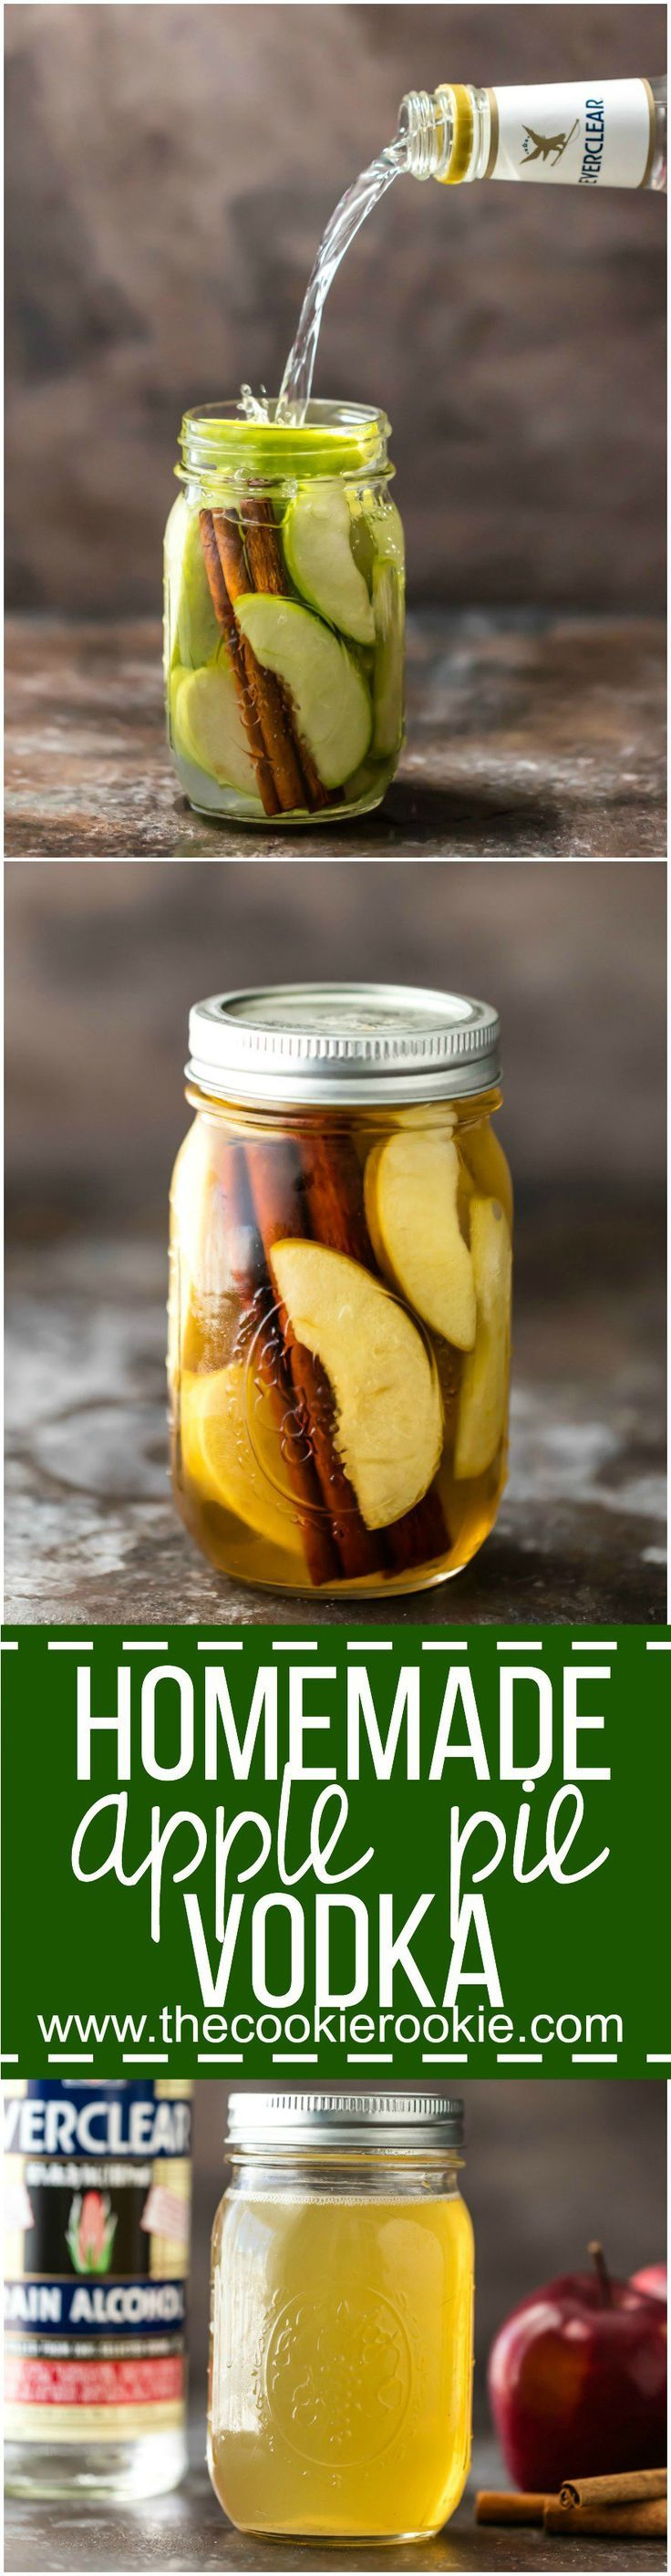 Try with whiskey, apple, nutmeg, cinnamon, ginger, clove Mix with amaretto to make a Godfather